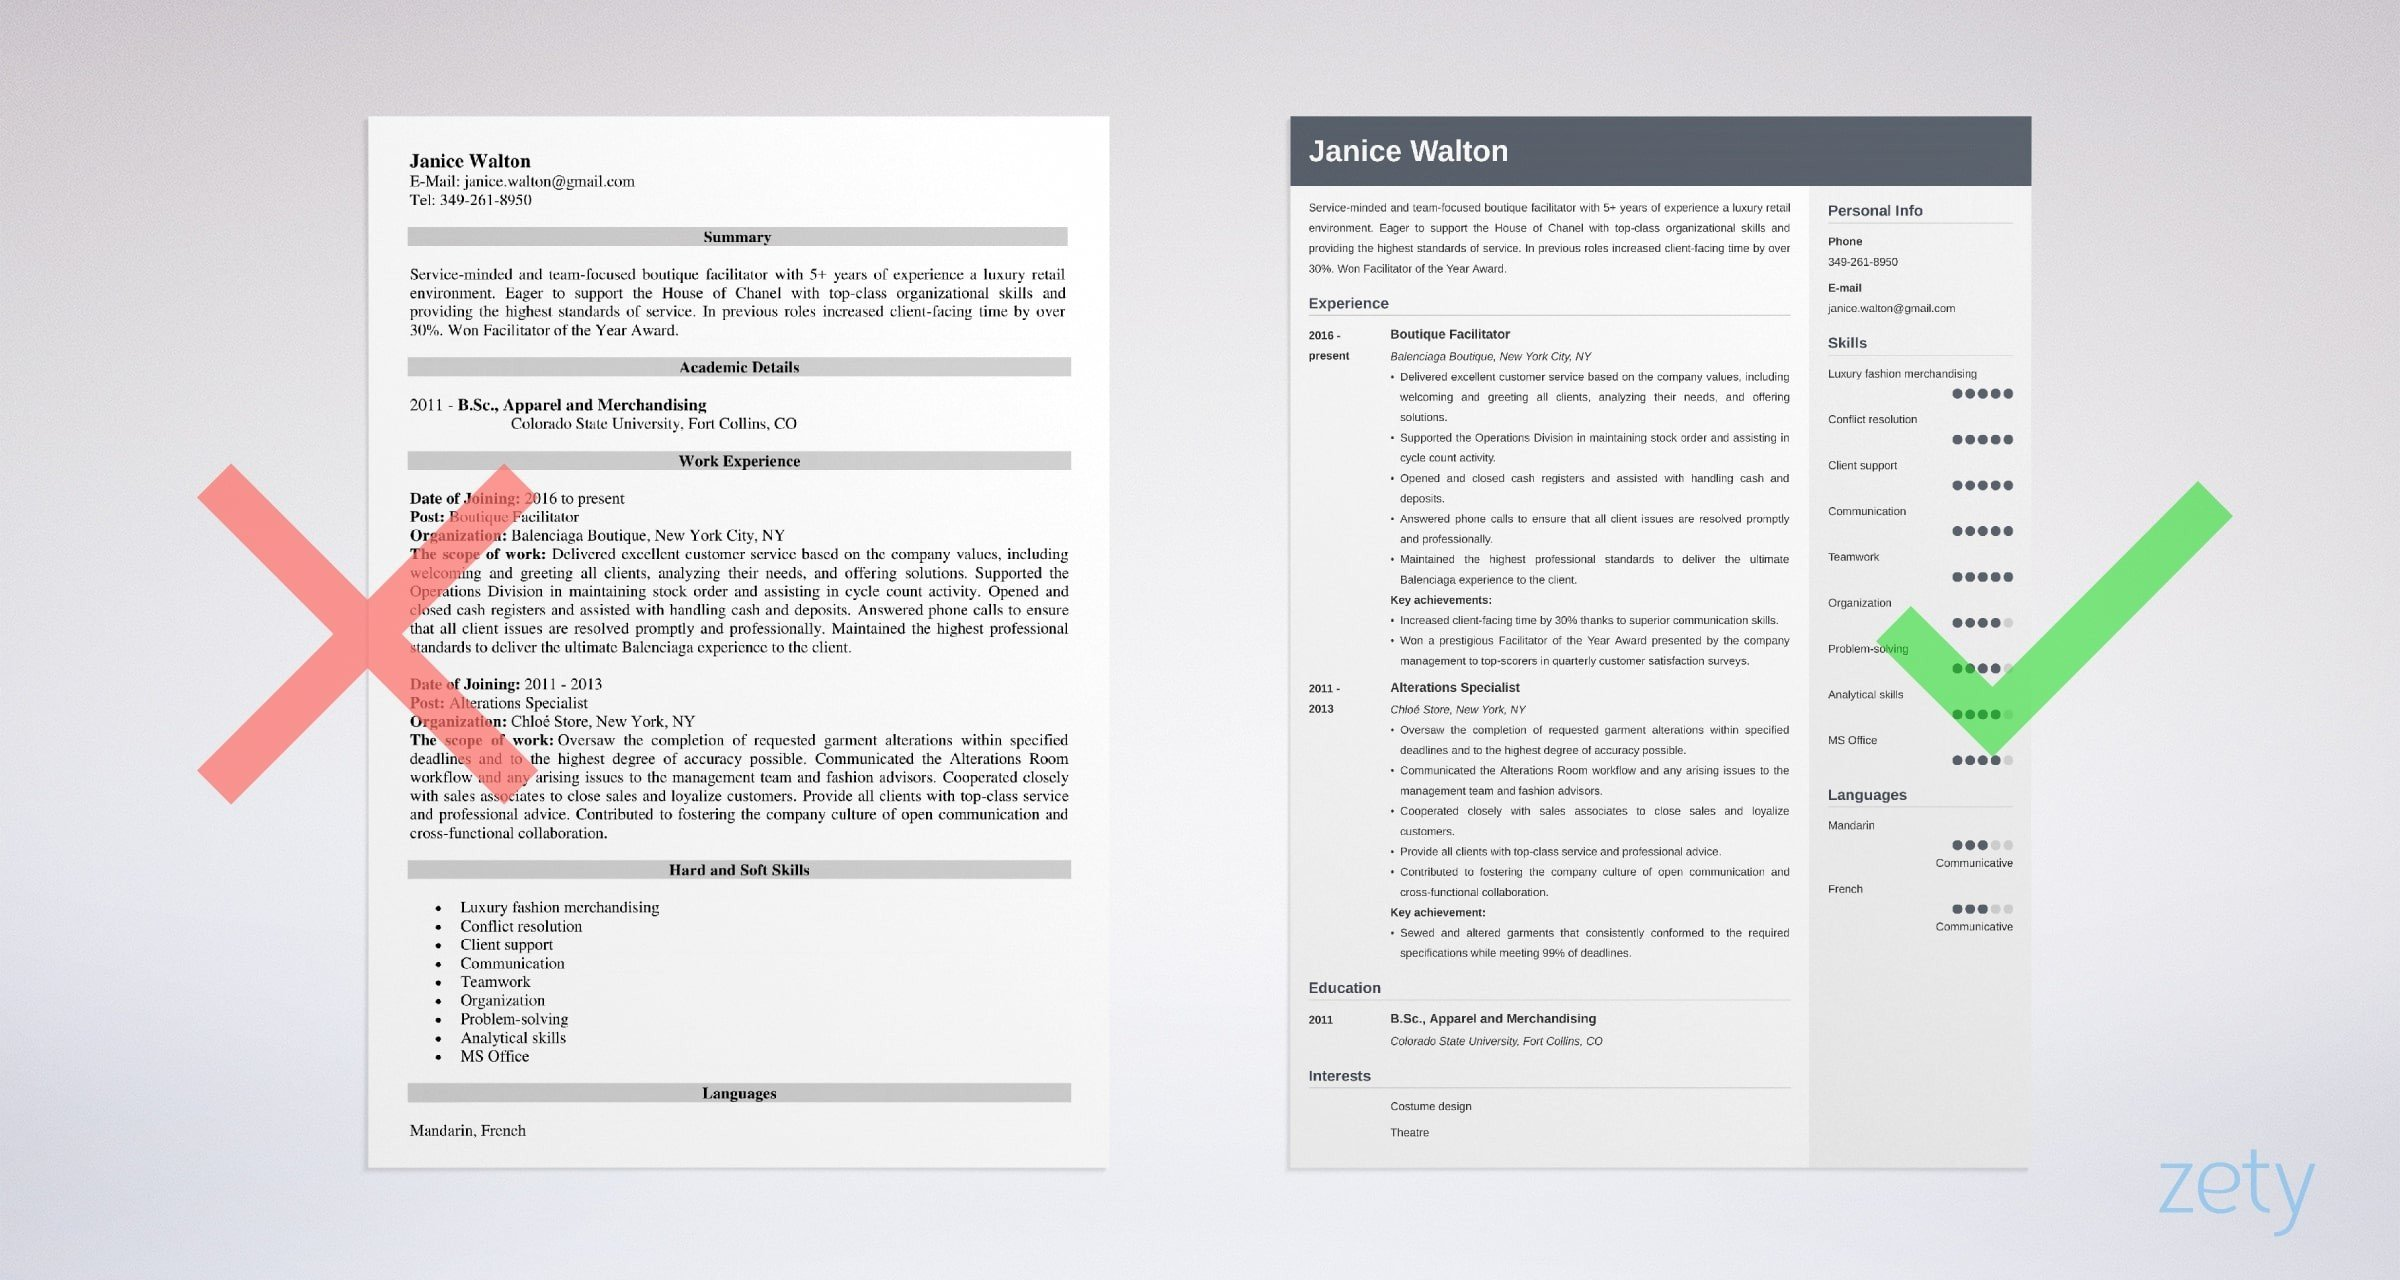 Fashion Resume Examples Templates Writing Guide 20 Tips